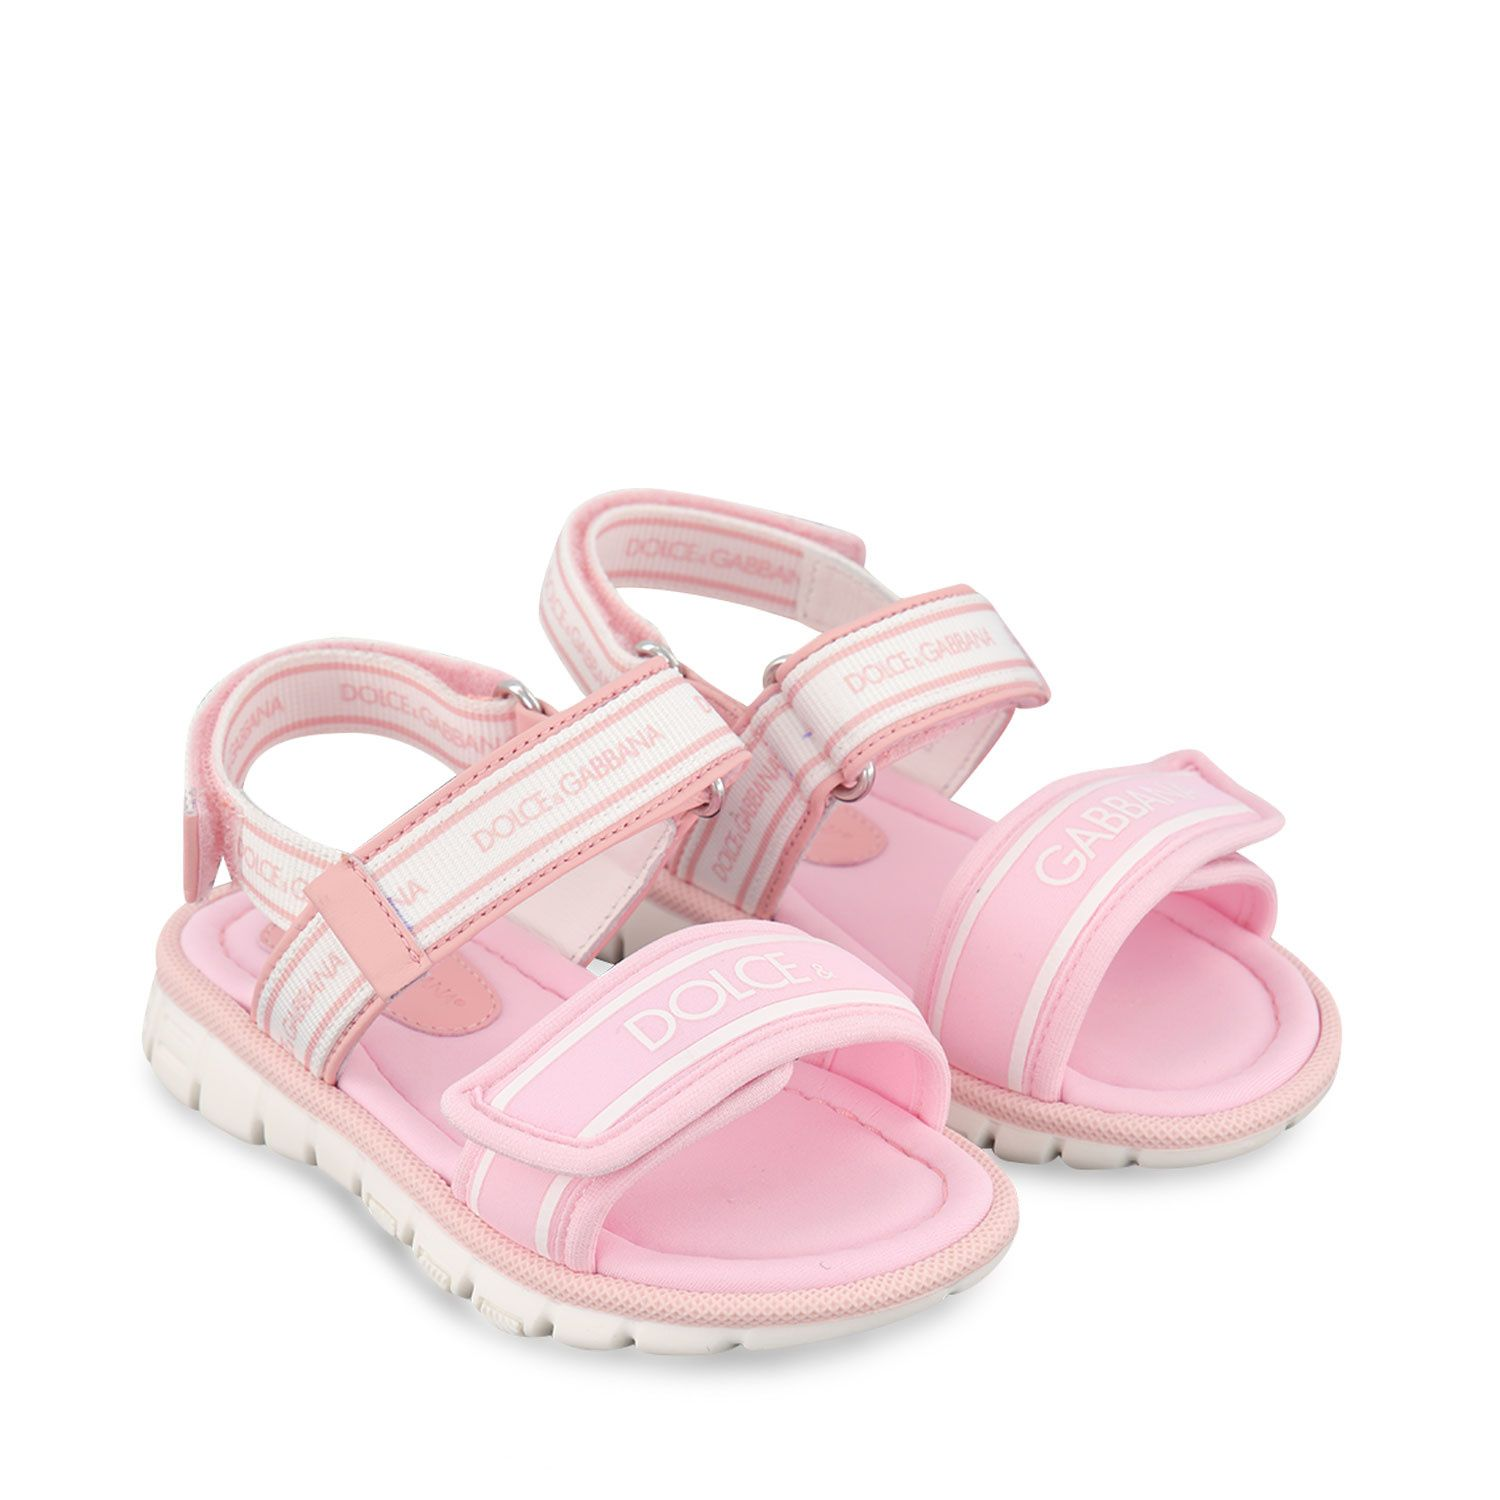 Picture of Dolce & Gabbana DL0066 AO260 kids sandals light pink